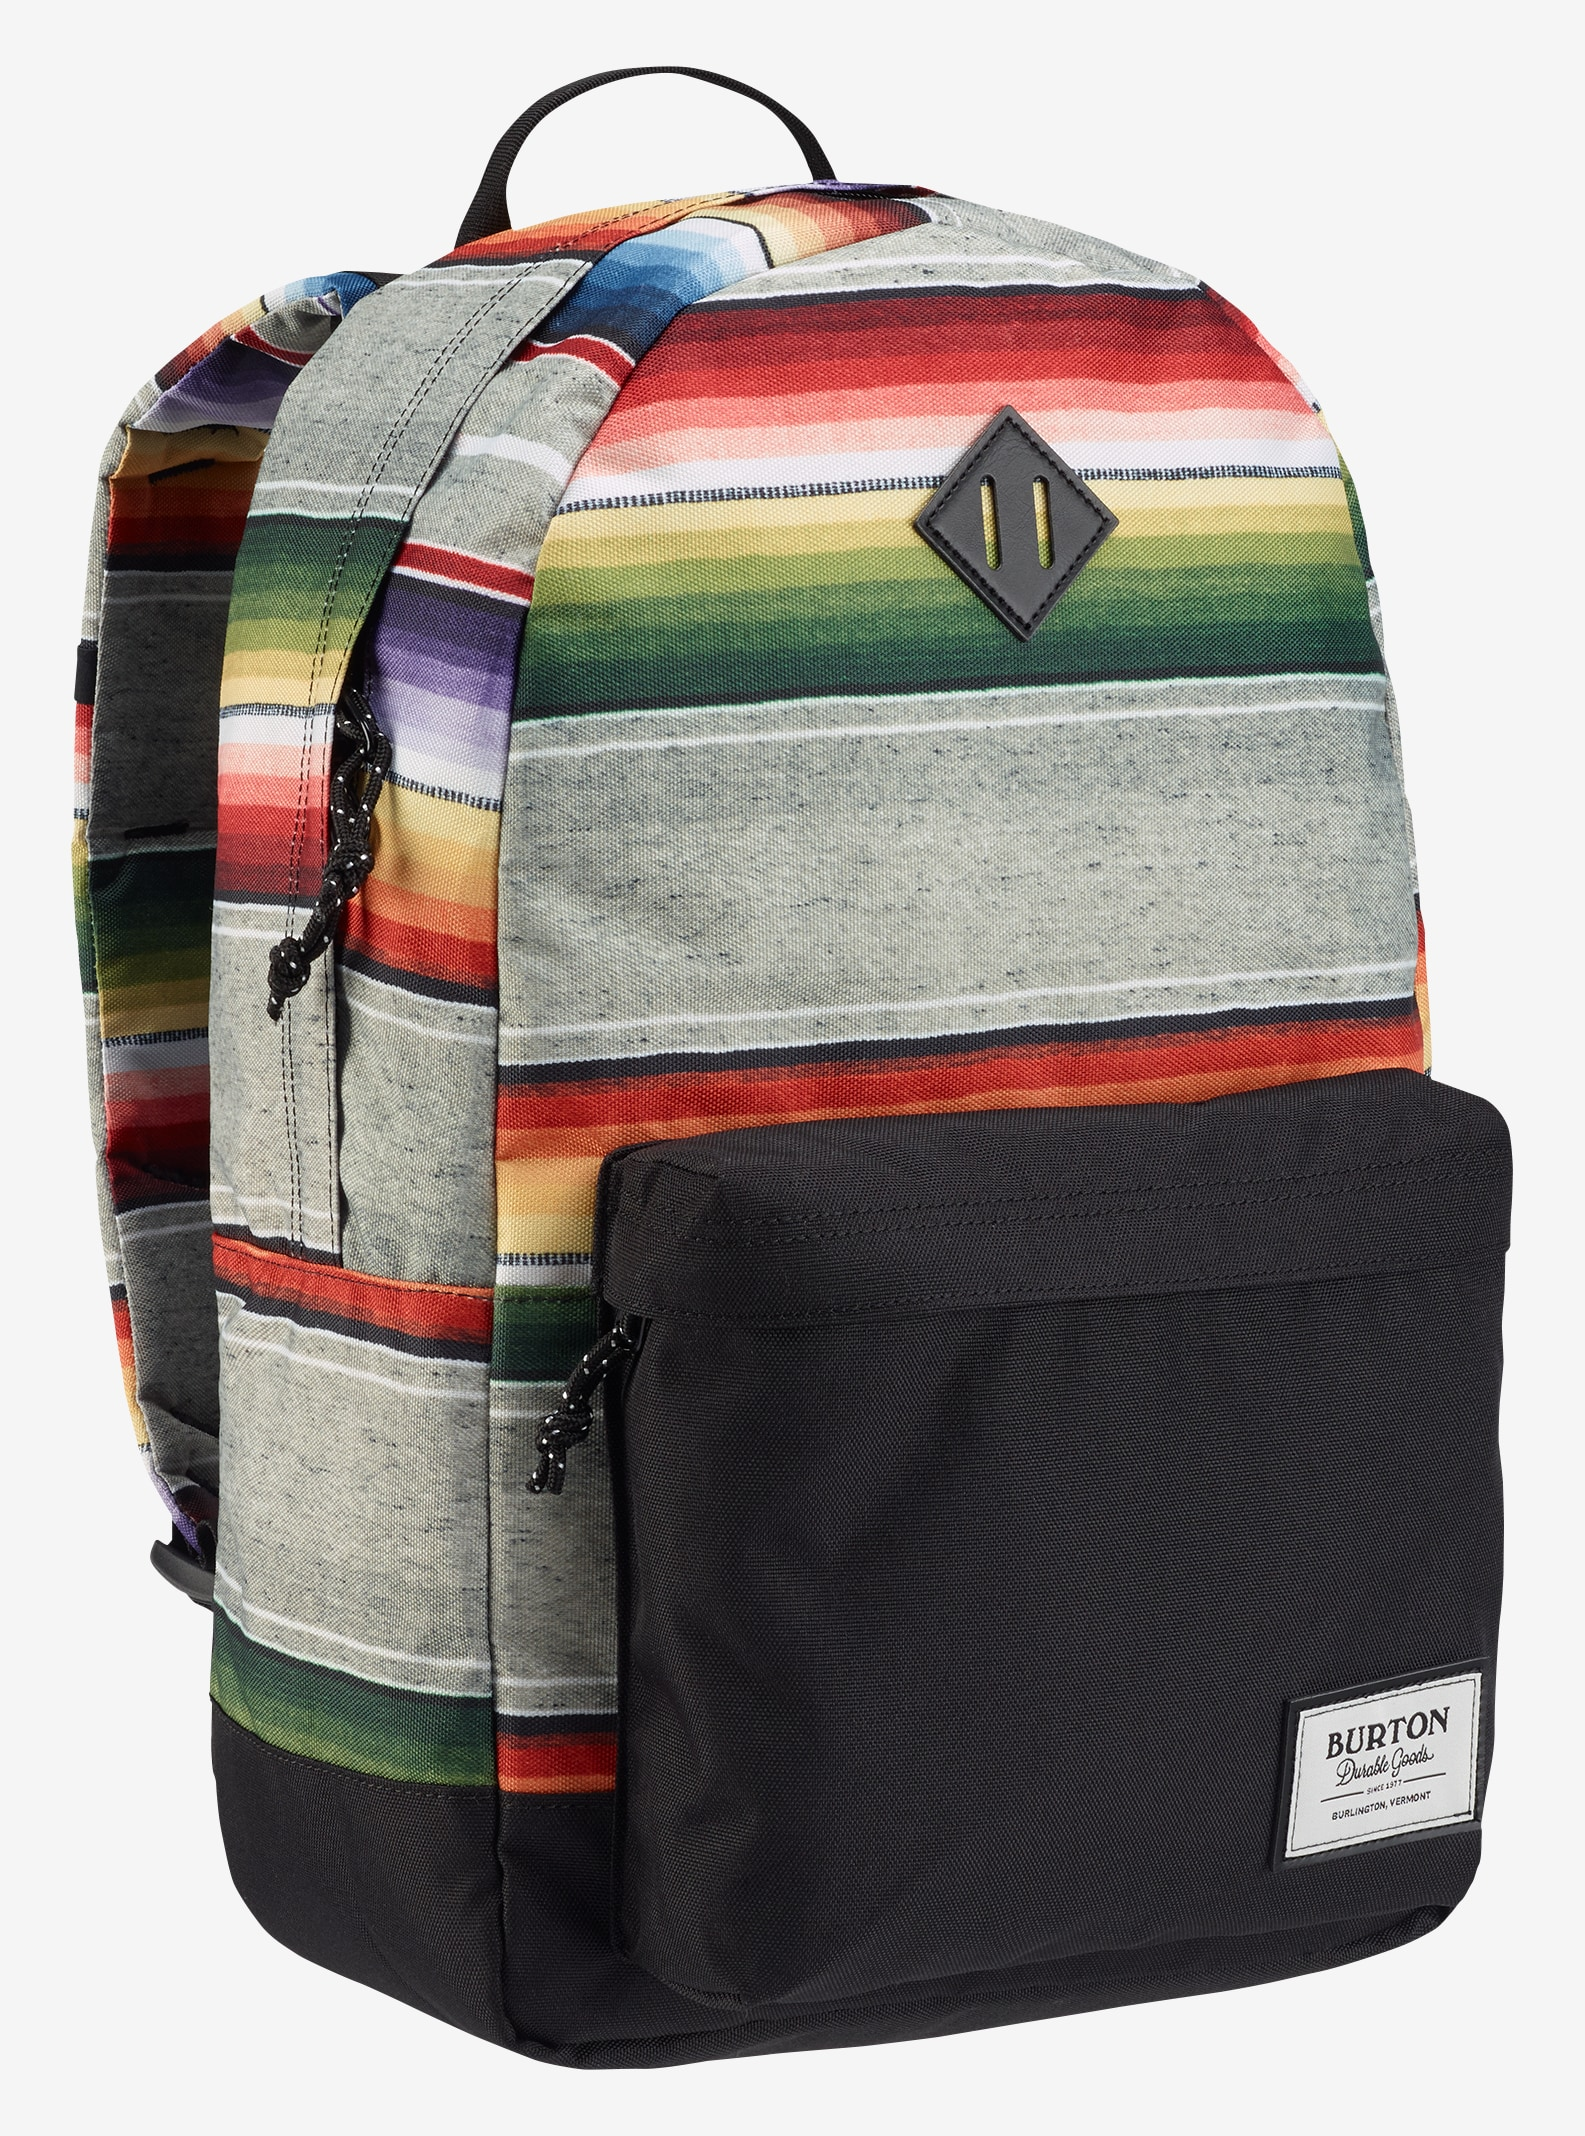 Burton Kettle Backpack shown in Bright Sinola Stripe Print